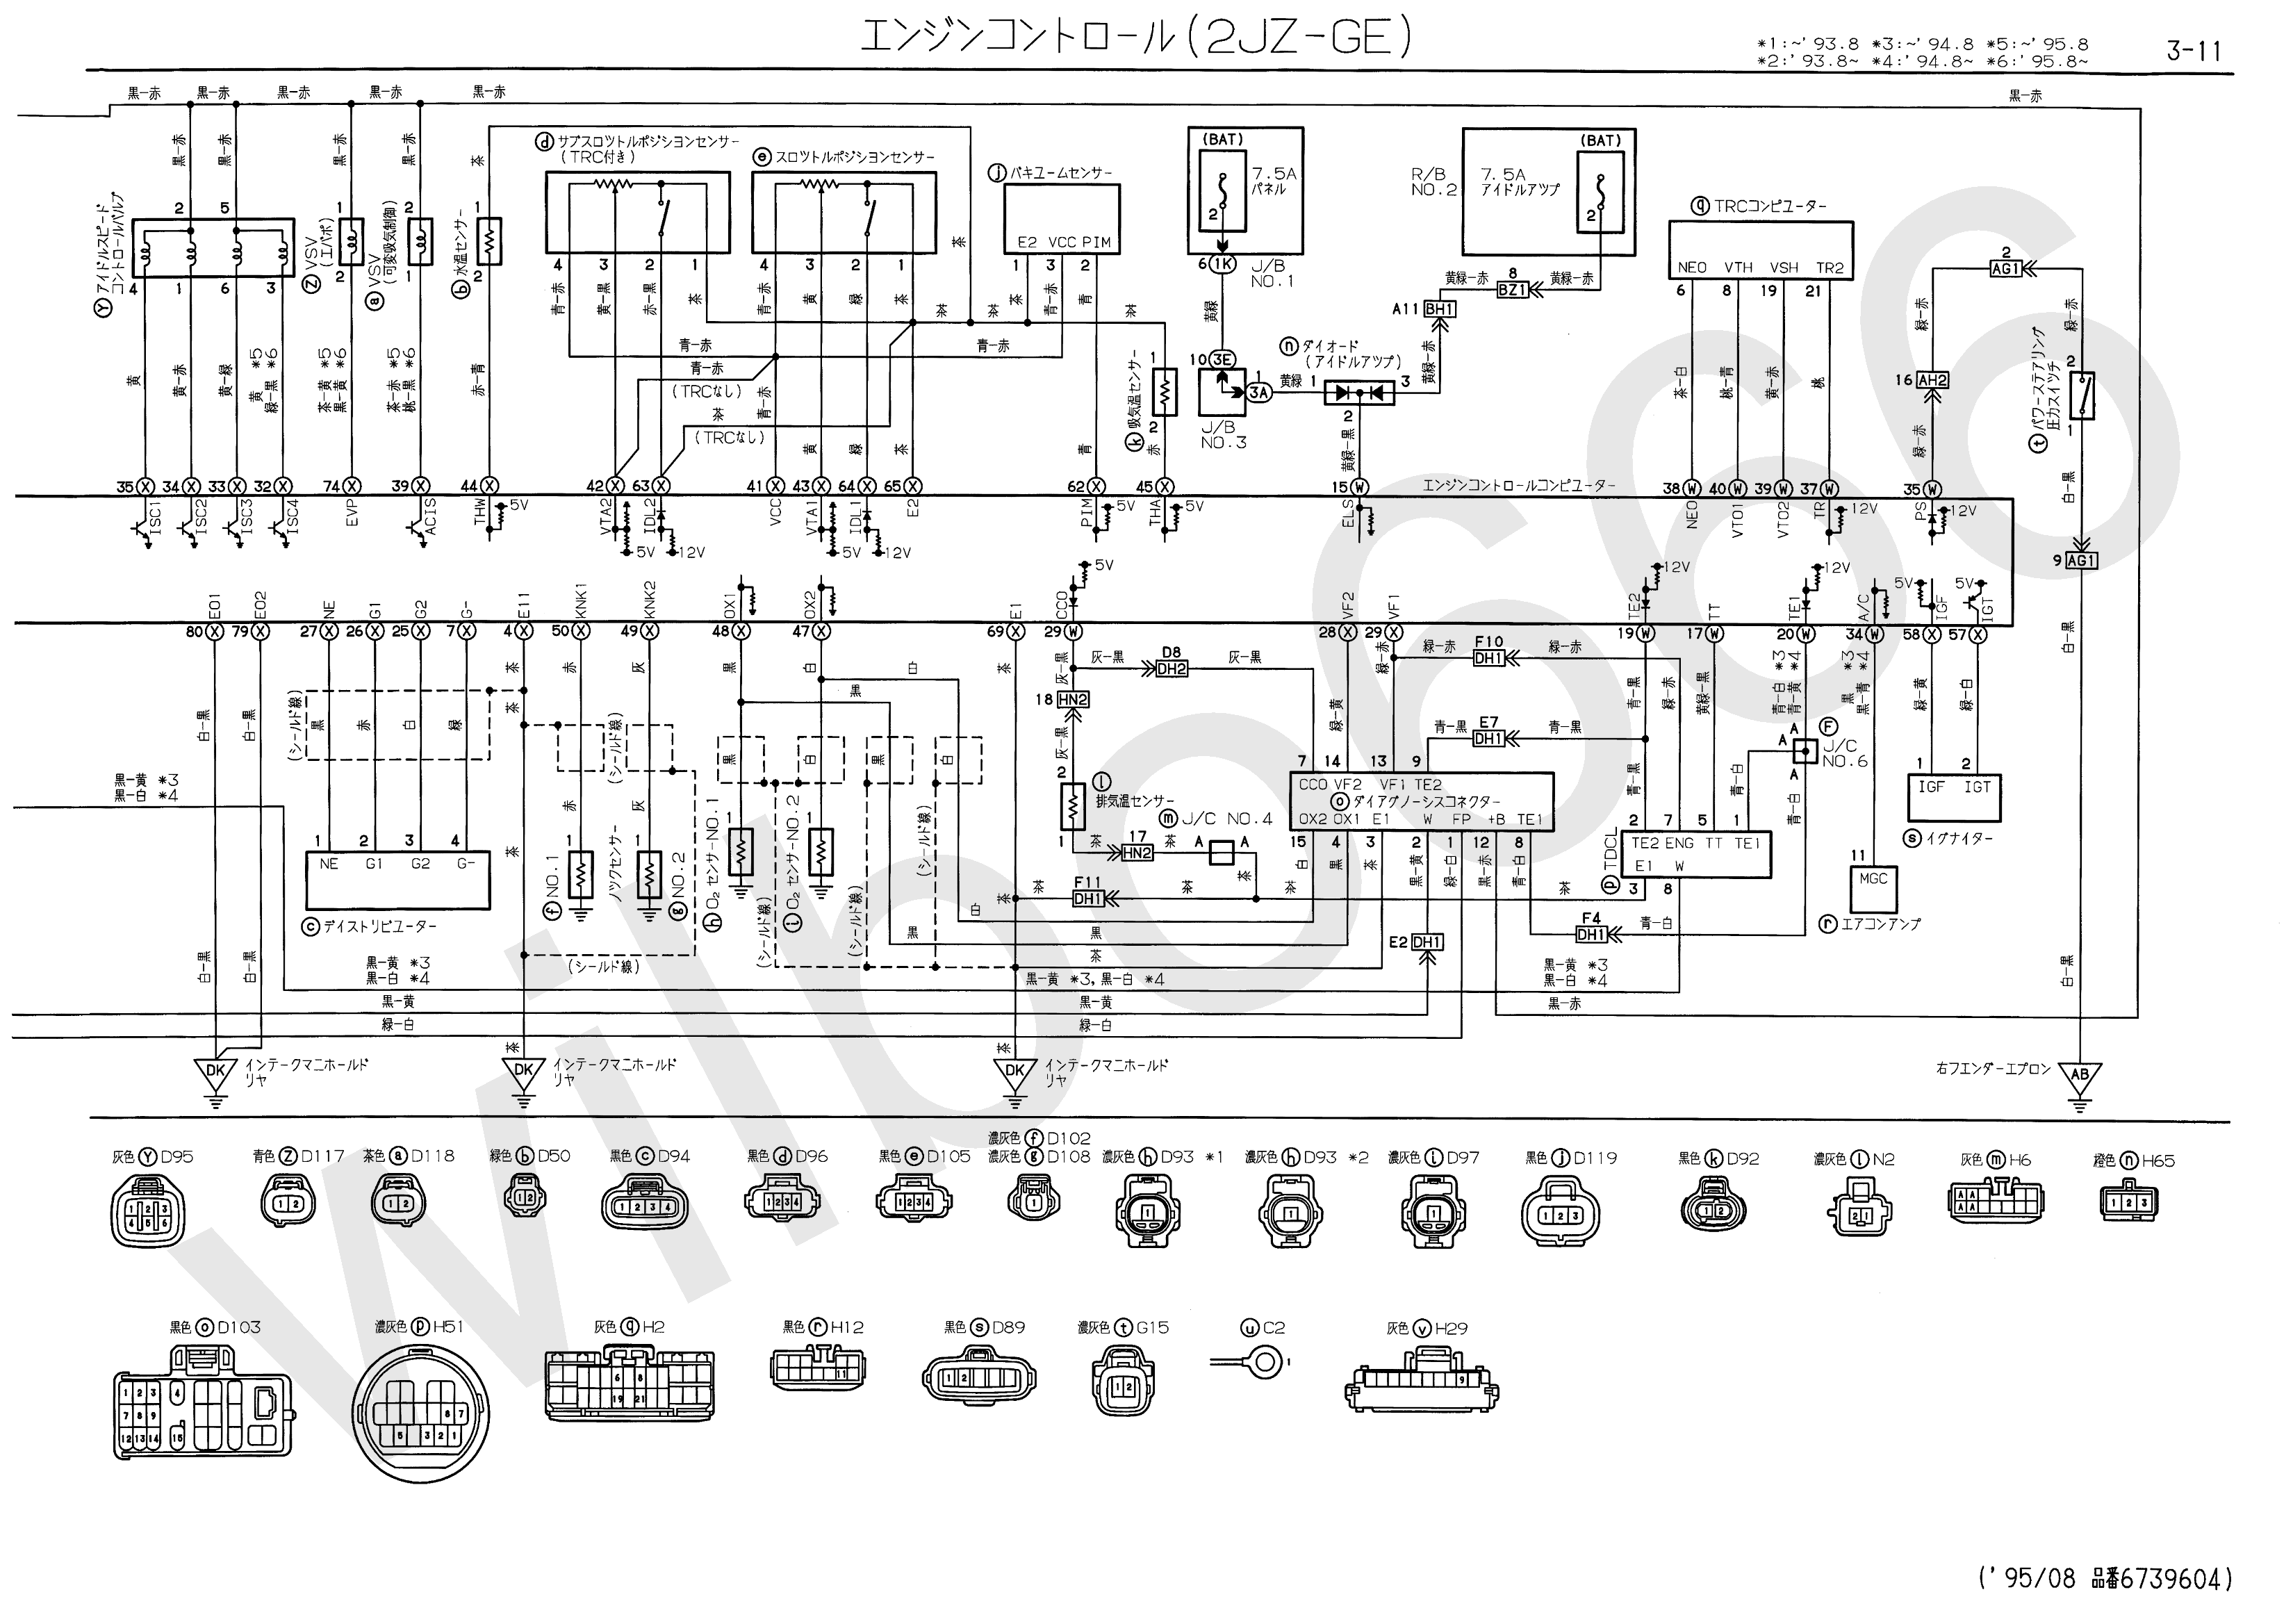 Jzs C Uzs Electrical Wiring Diagram on Electrical Wiring Diagram For 2jz Ge